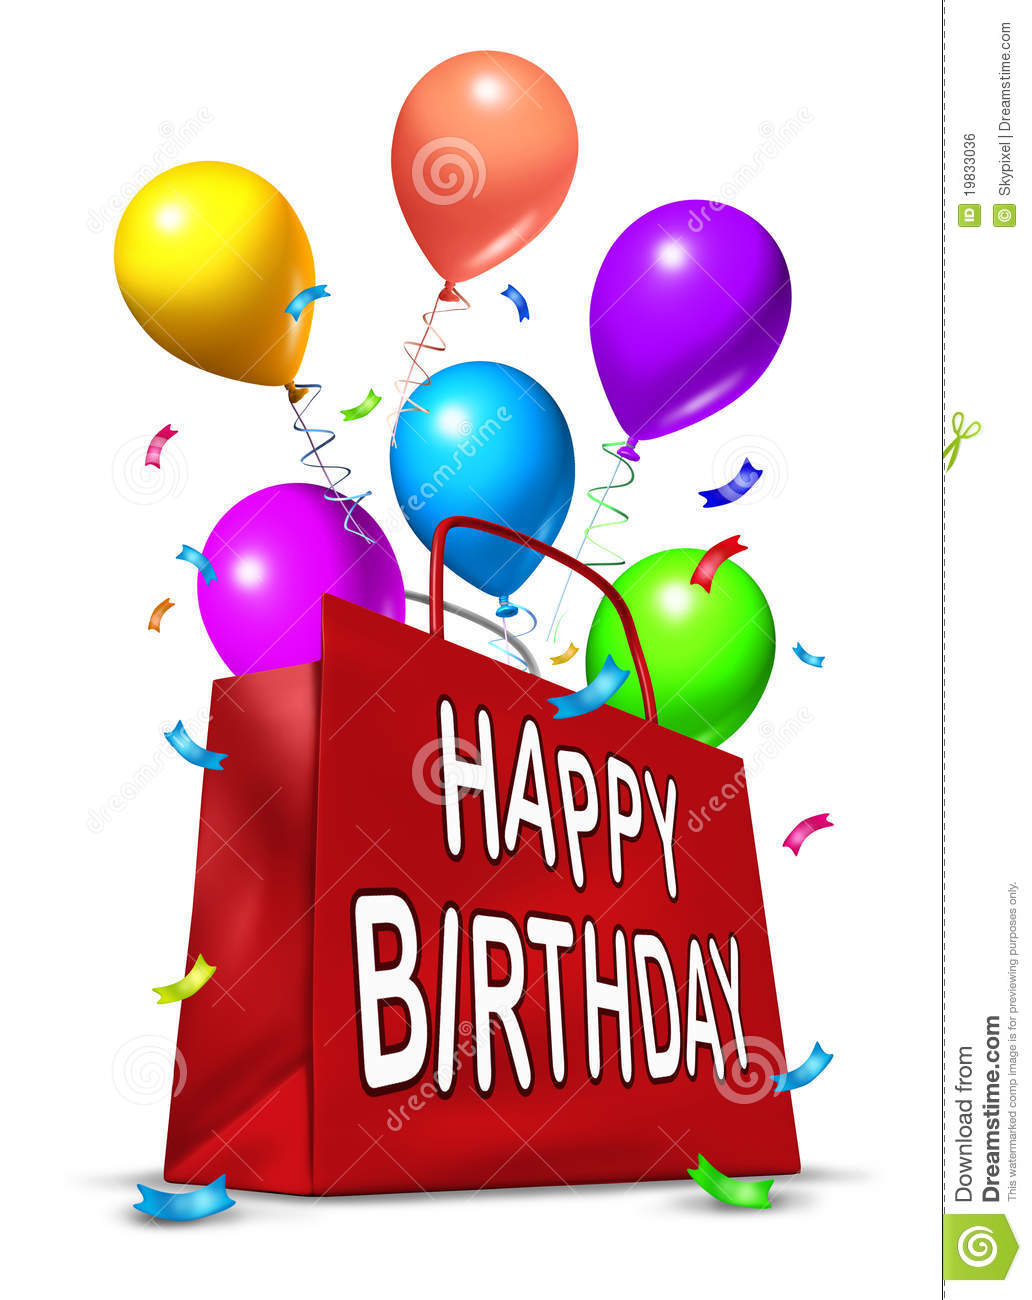 Happy Birthday Party Bag Royalty Free Stock Image - Image ...